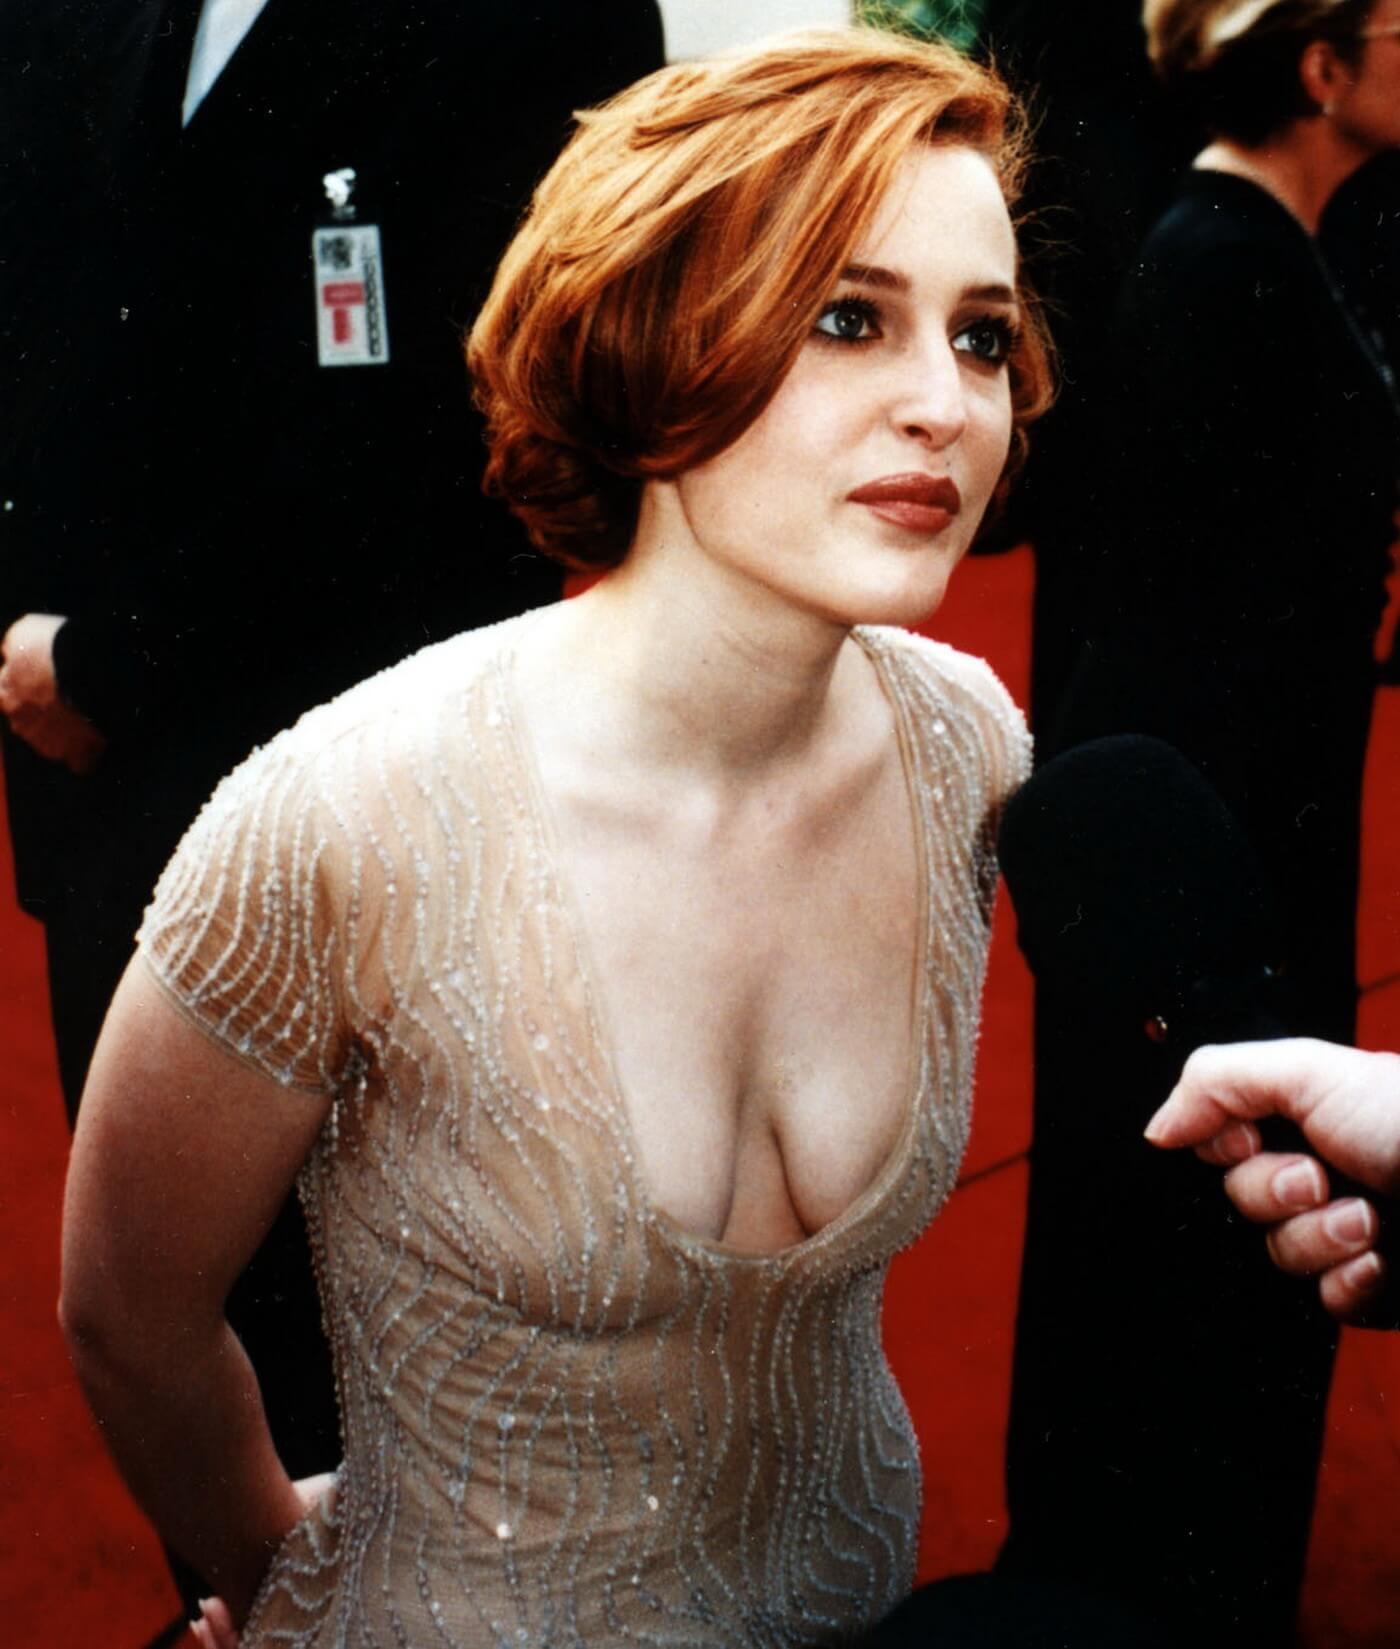 60+ Sexy Gillian Anderson Boobs Pictures Reveal Her